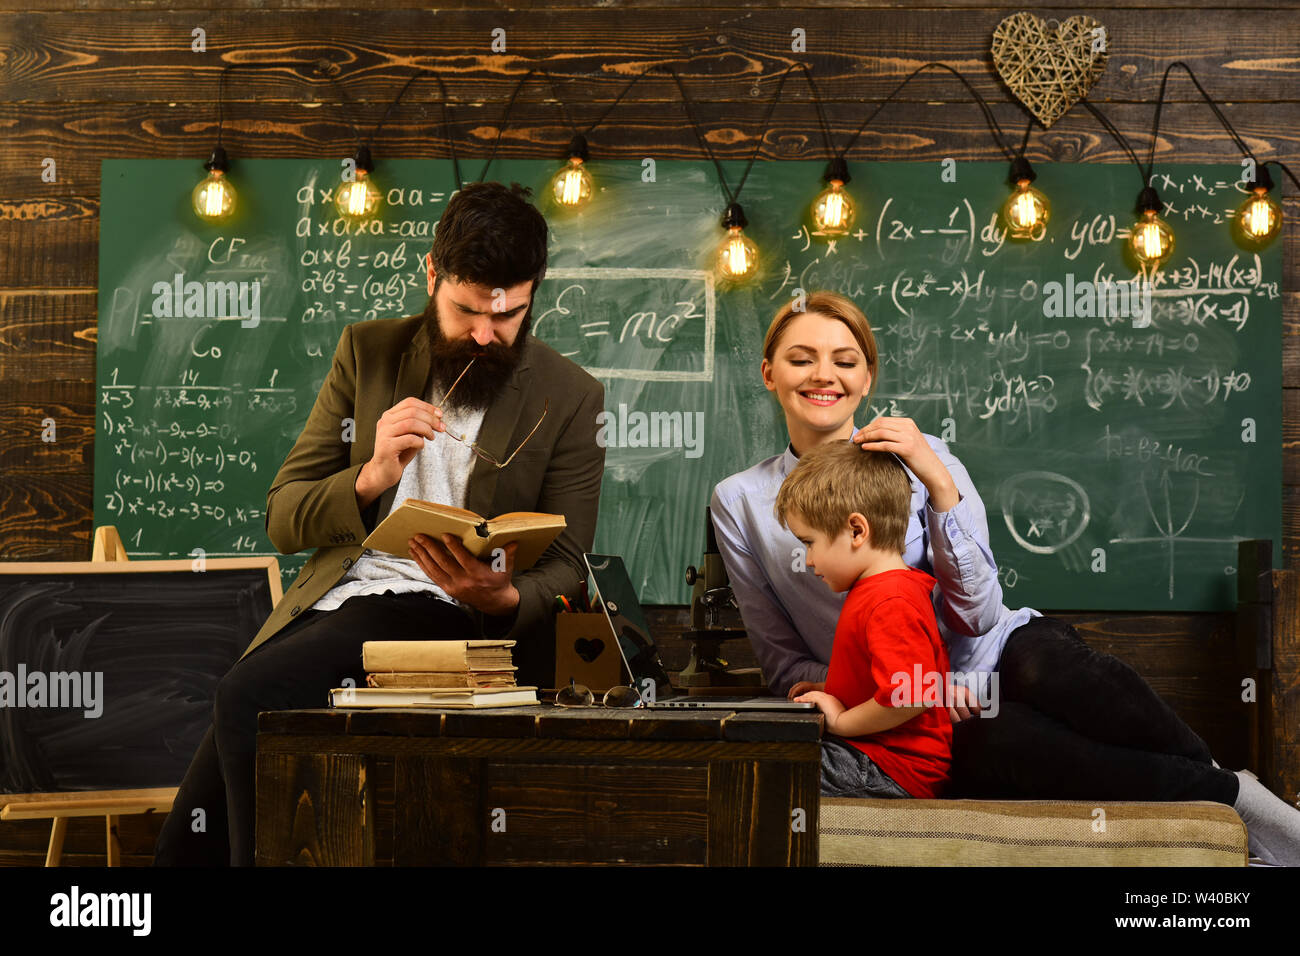 Talented coach during workshop indoors - productive training in stylish college interior, Teacher is warm accessible enthusiastic and caring - Stock Image